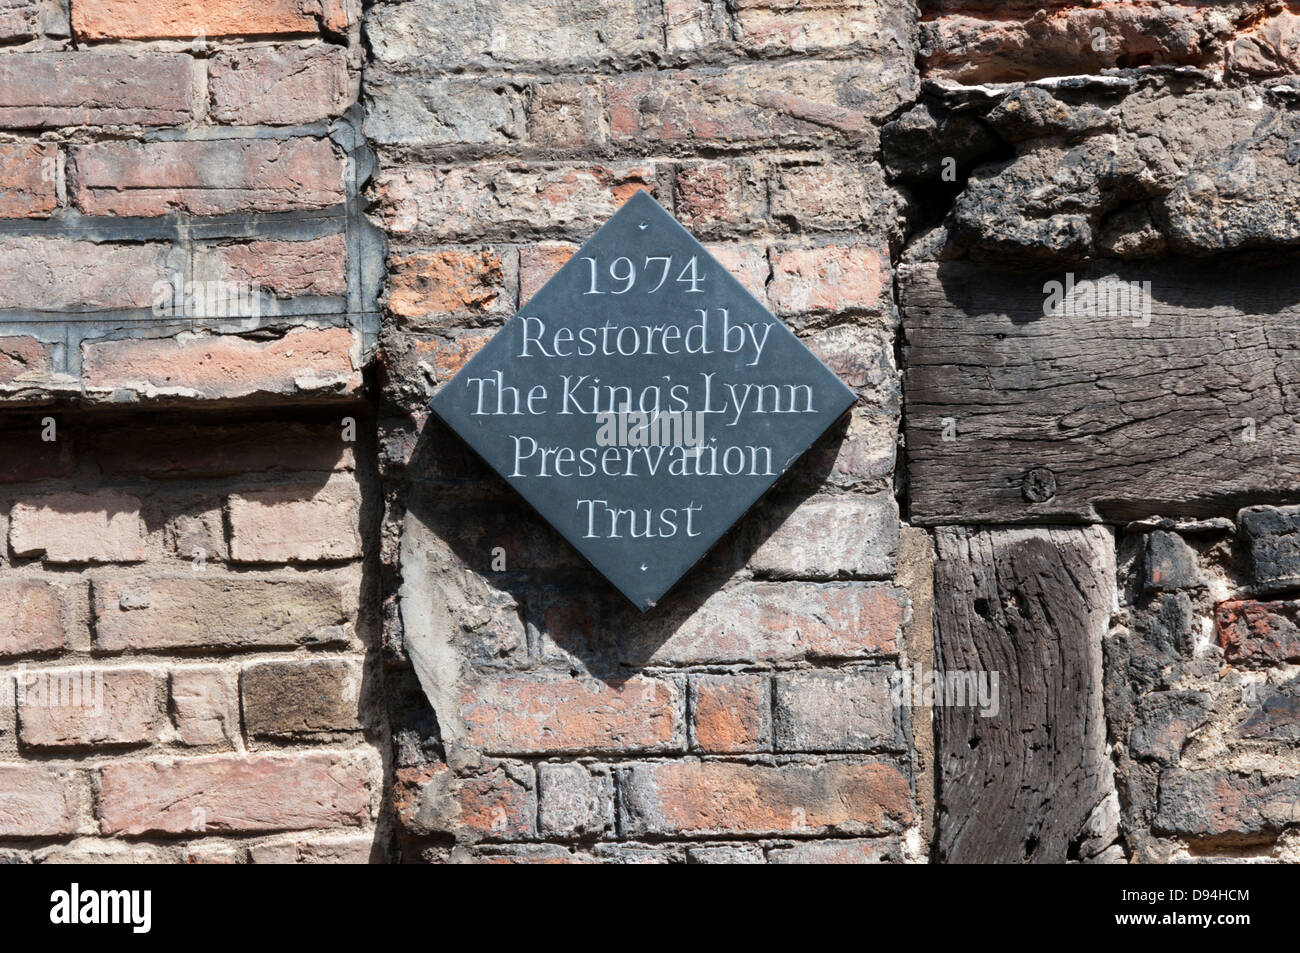 A plaque records a building restored by the King's Lynn Preservation Trust. - Stock Image